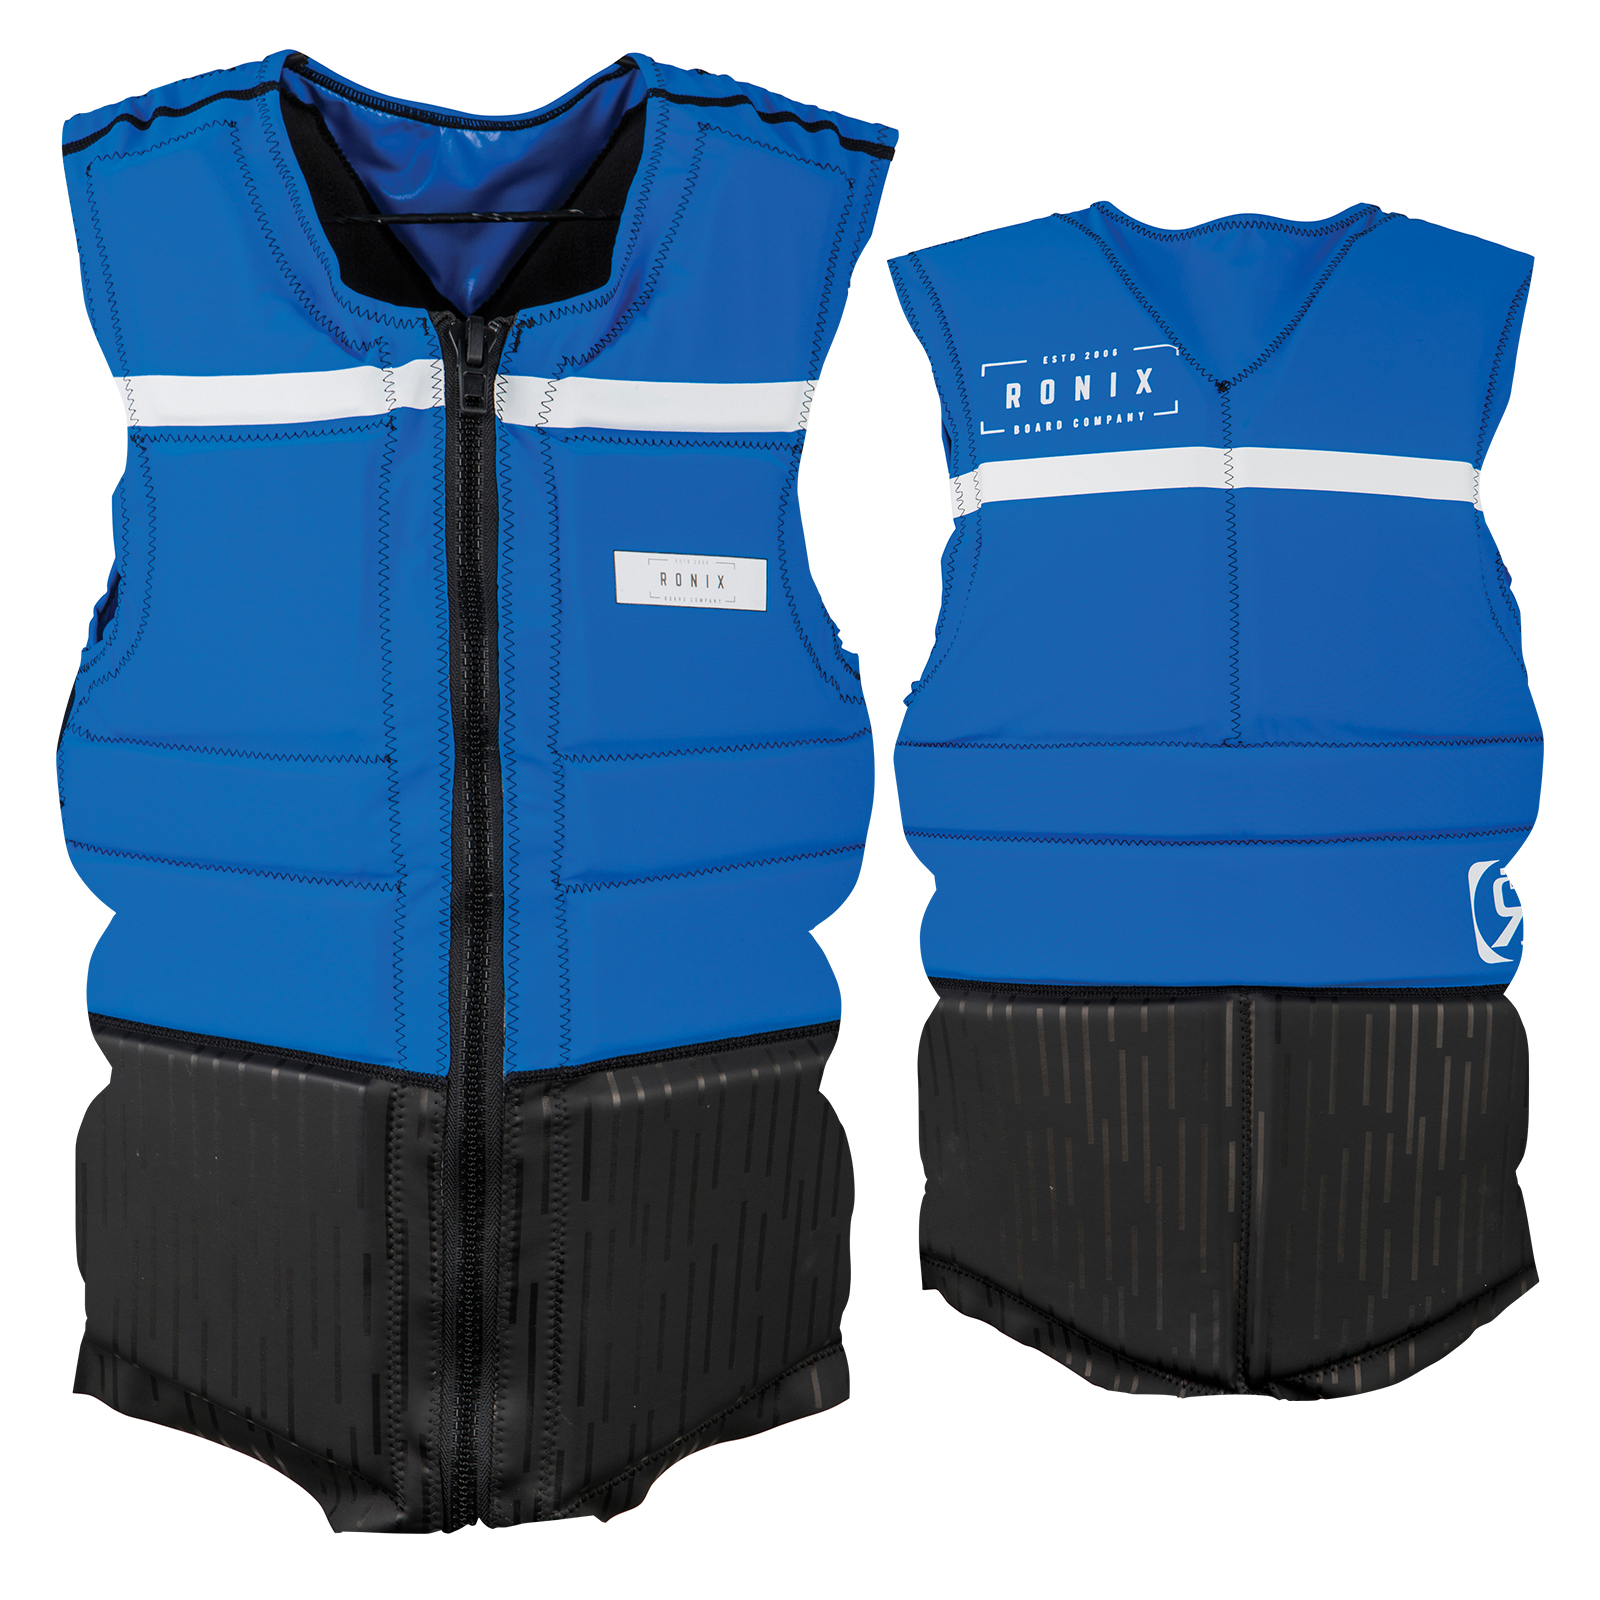 PARKS ATHLETIC CUT VEST RONIX 2018